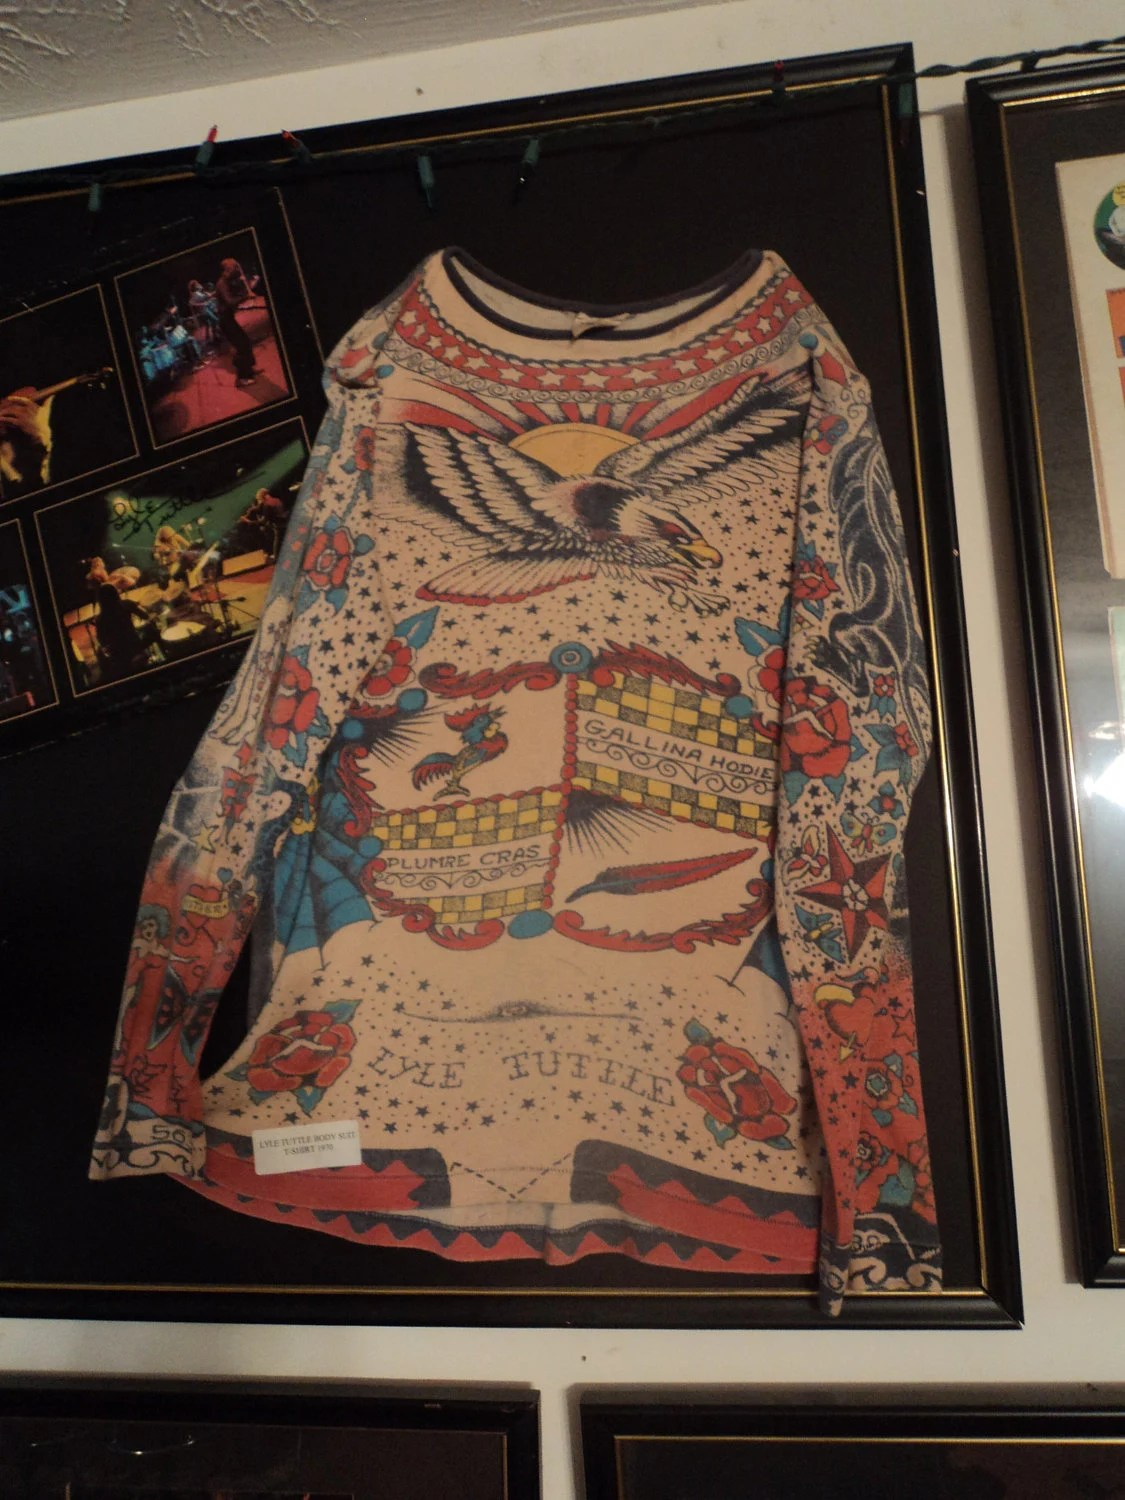 Items Similar To Rare Collectiable Lyle Tuttle Body Suit Ideas And Designs